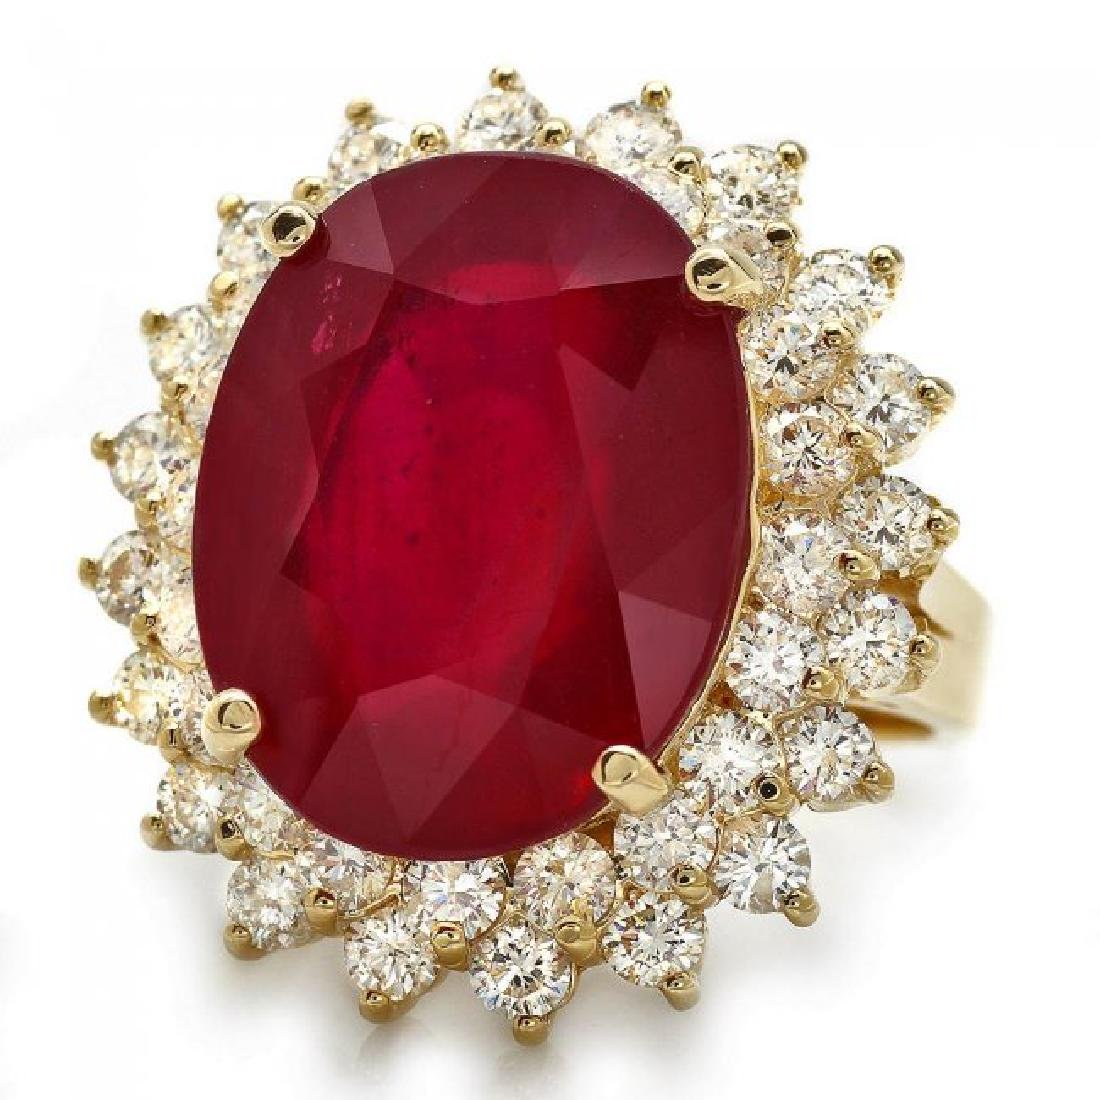 14k Yellow Gold 18.00ct Ruby 2.40ct Diamond Ring - 2